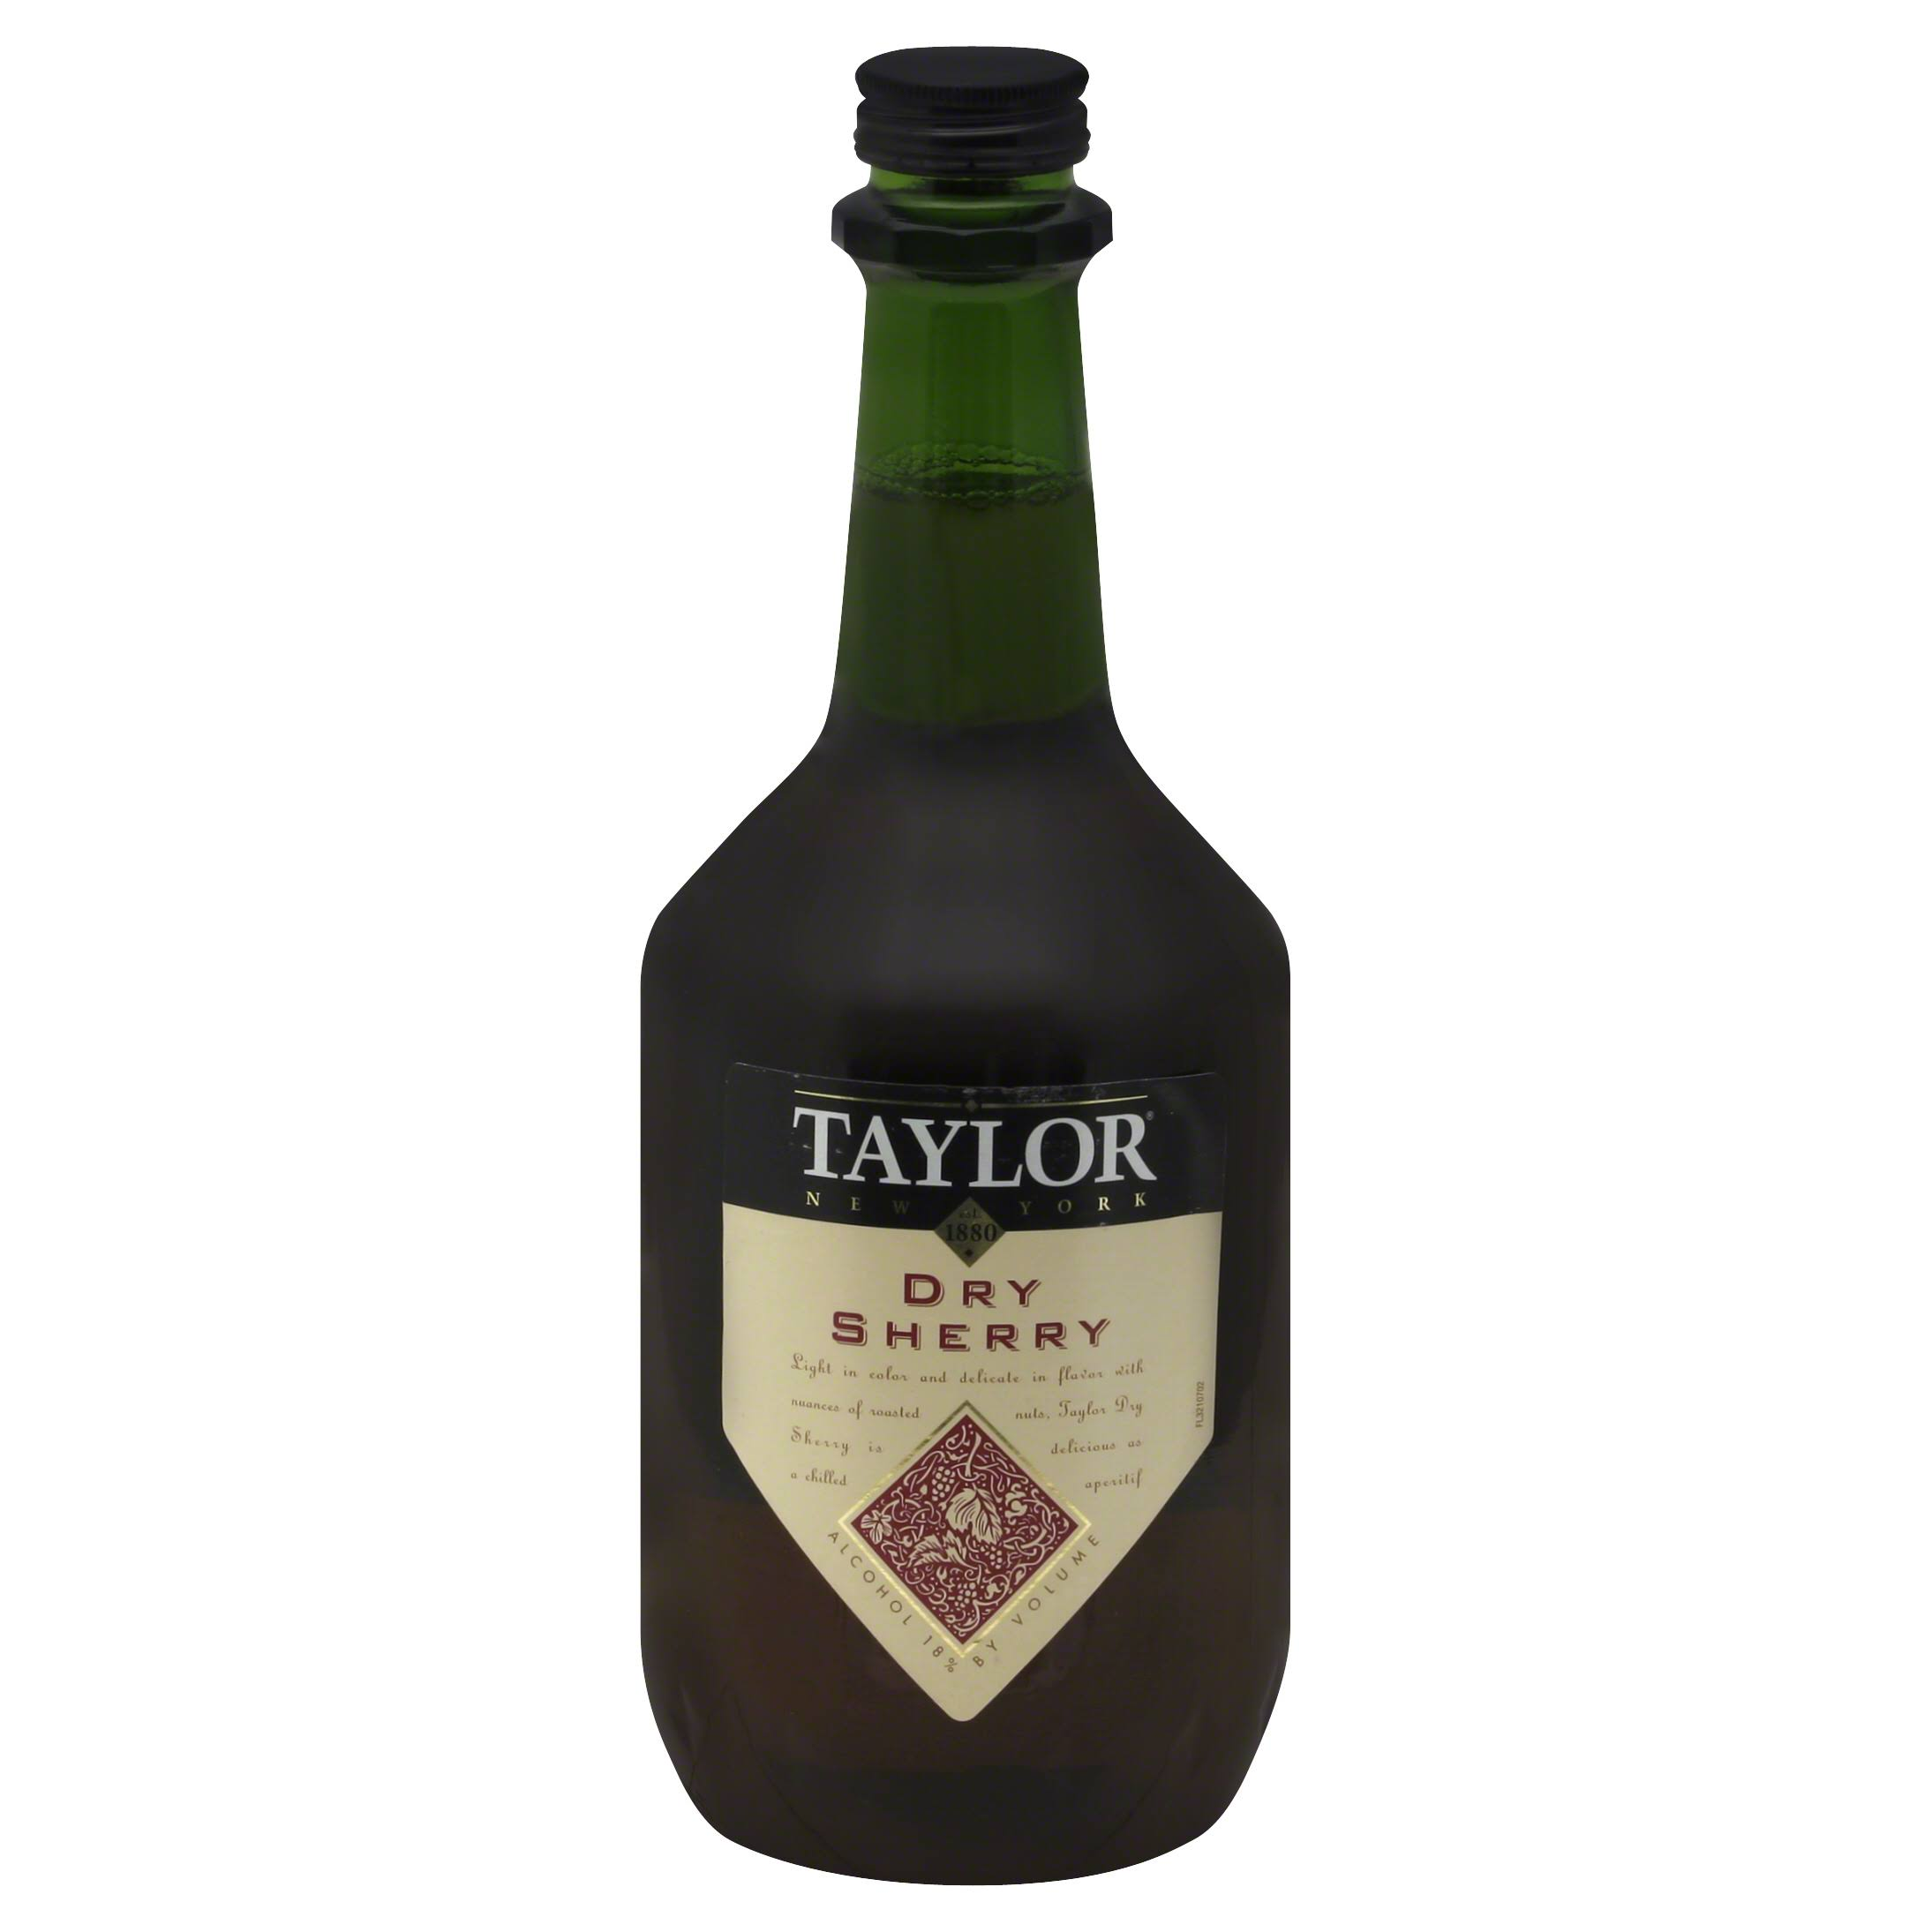 Taylor Dry Sherry - United States, 1.5L